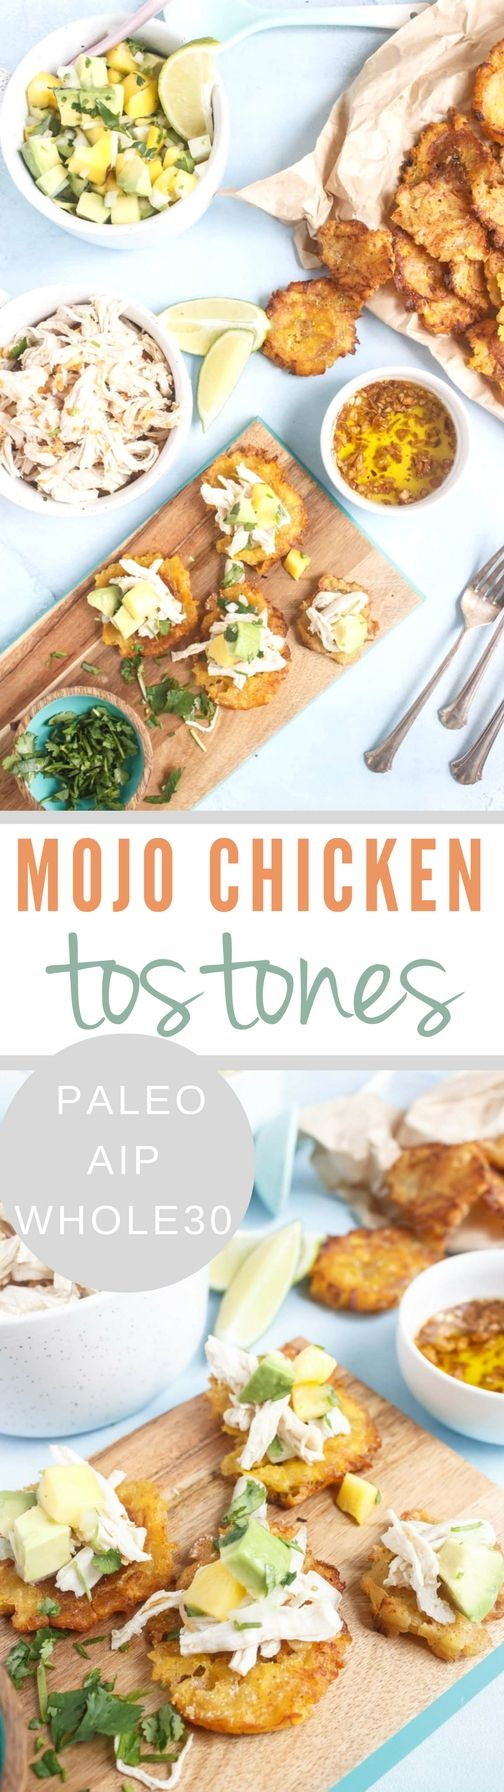 These Mojo Chicken Tostones with Mango Avocado Salsa make a fantastic lunch or easy dinner. With a few shortcuts this can be on the table in less than 30!